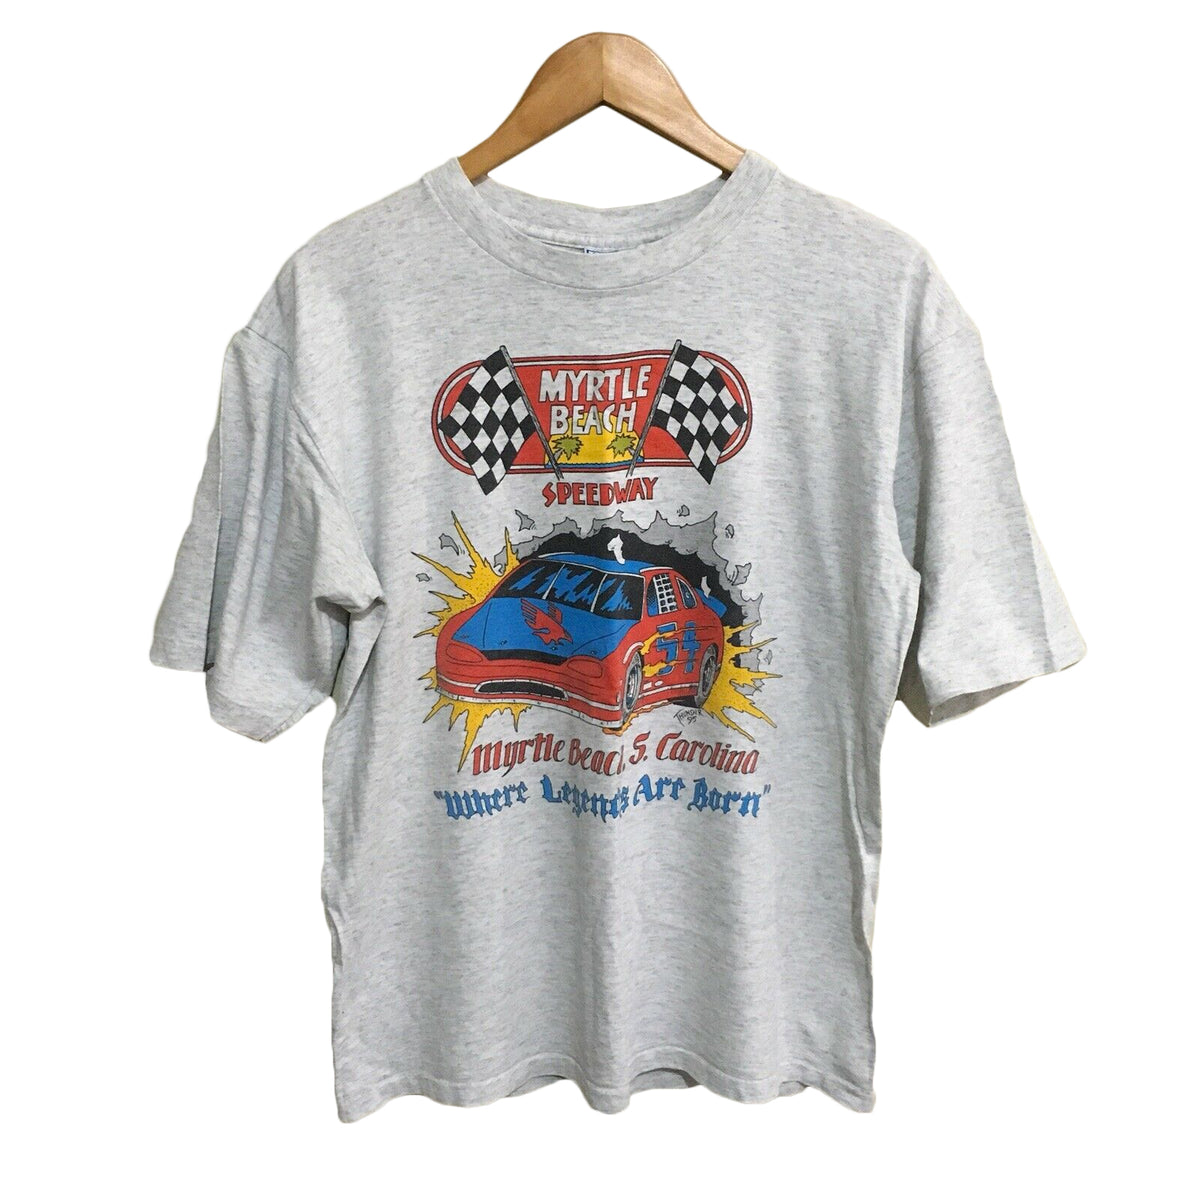 Myrtle Beach Speedway Nascar Racing Vintage 90's T-Shirt Mens Large